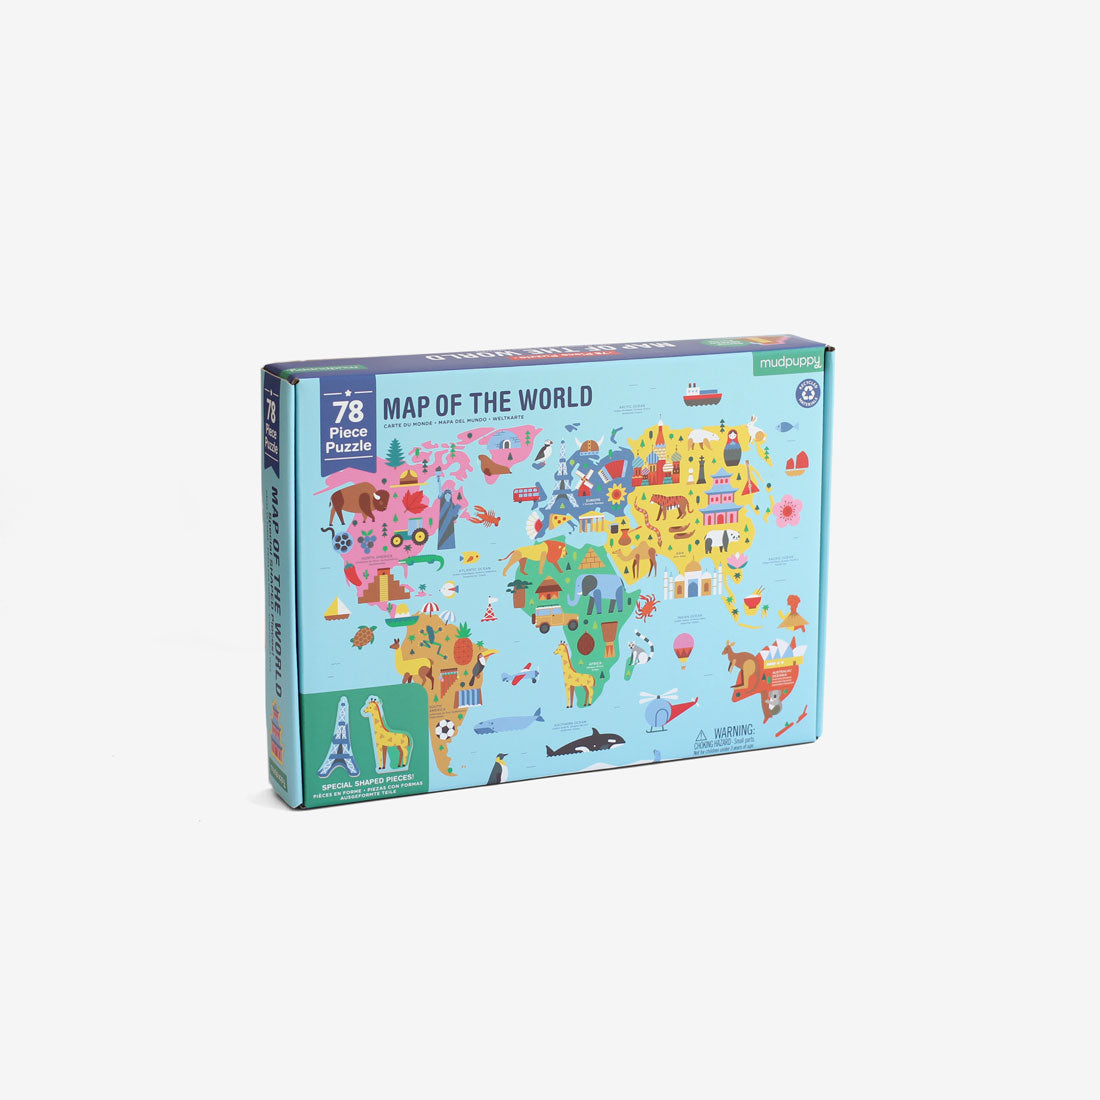 Map of the World - 78 piece Puzzle